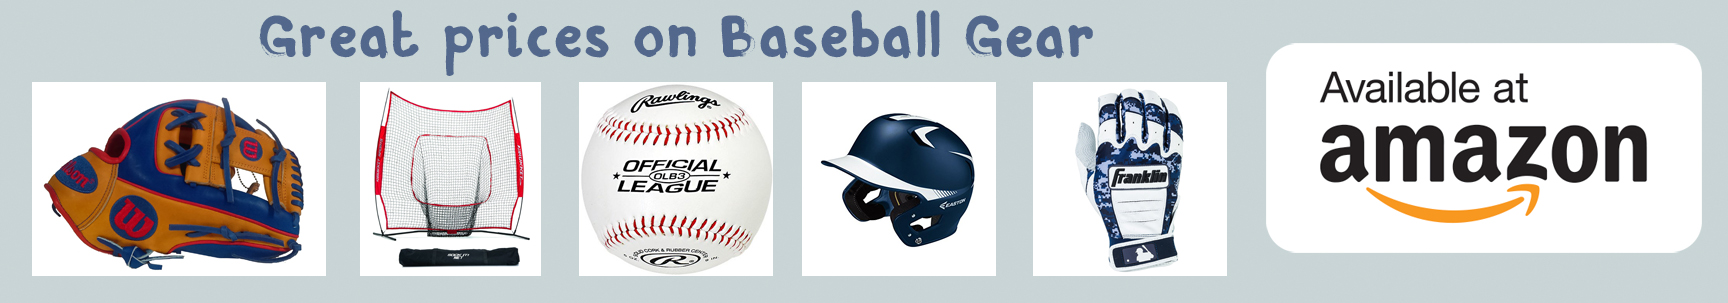 amazon baseball gear banner